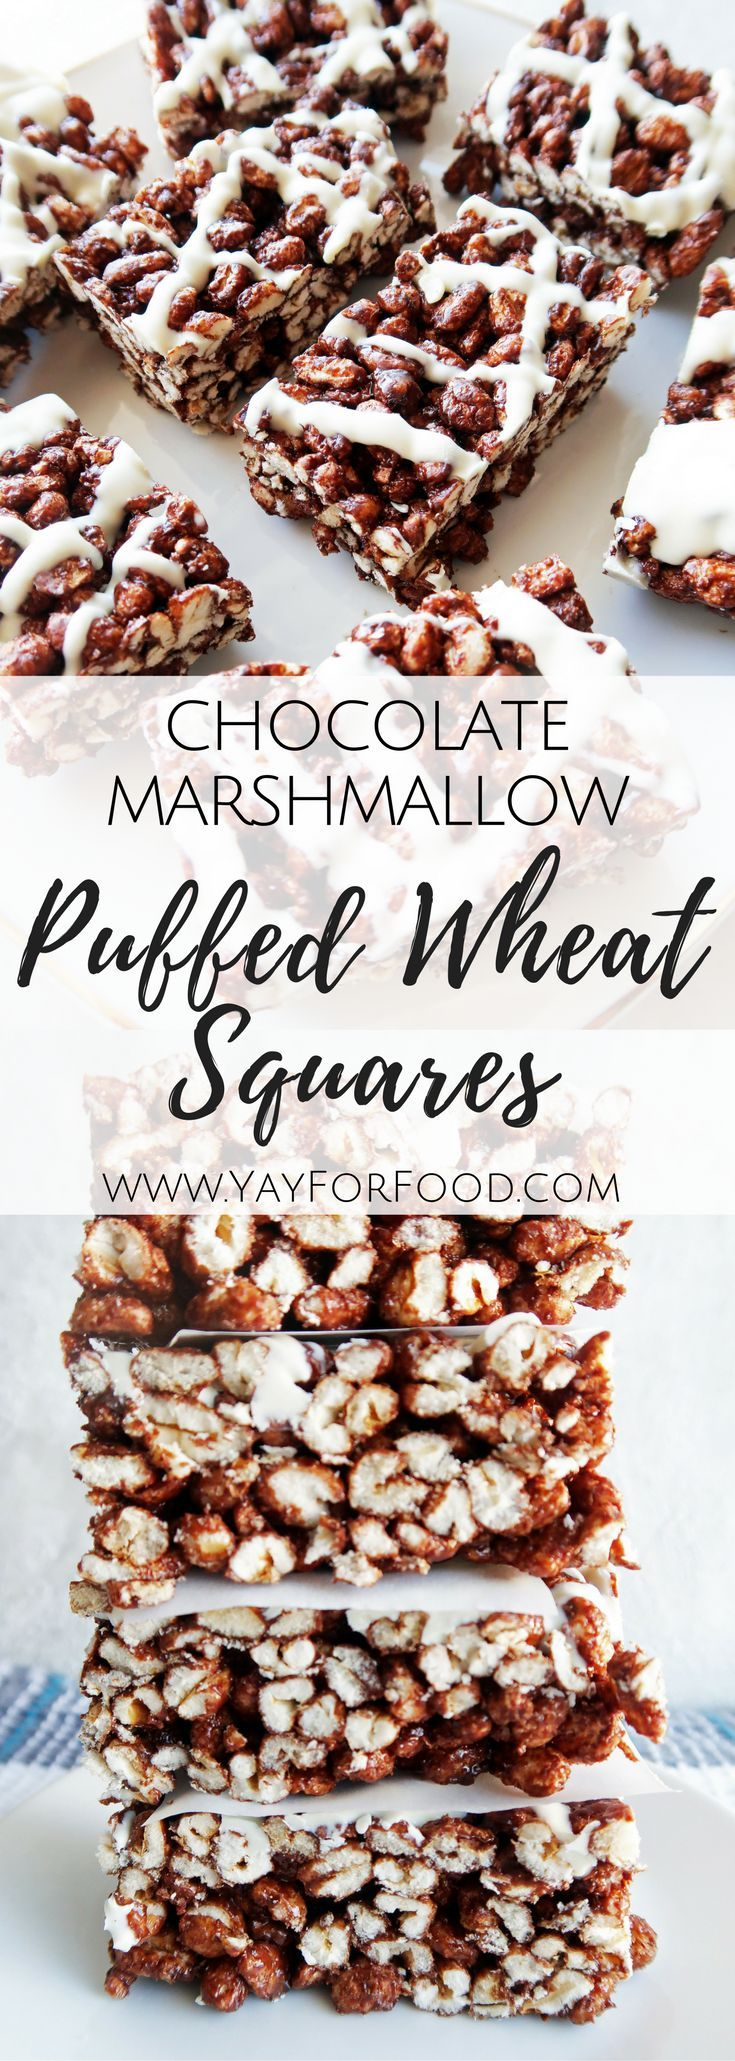 Try these no-bake soft and chewy chocolate marshmallow puffed wheat squares with white chocolate drizzle. Make it in 10 minutes with only 7 ingredients! {Recipe video link} quick | easy | desserts